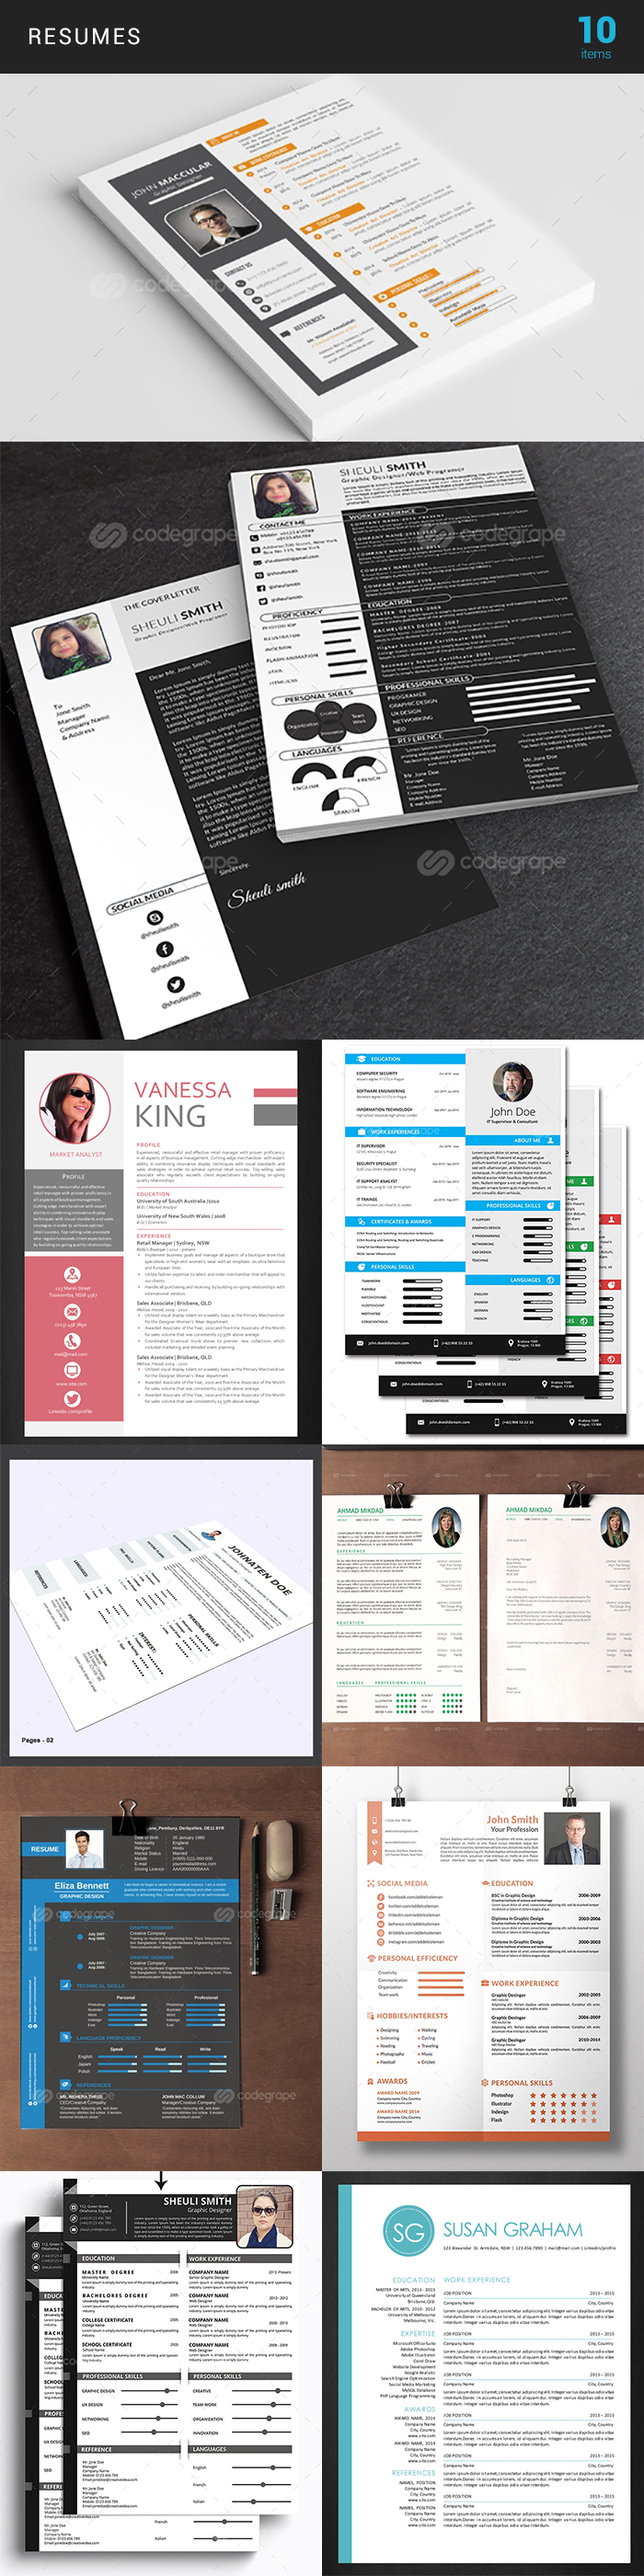 Elegant Print Templates Bundle with 100 Items - Only $19 - resume